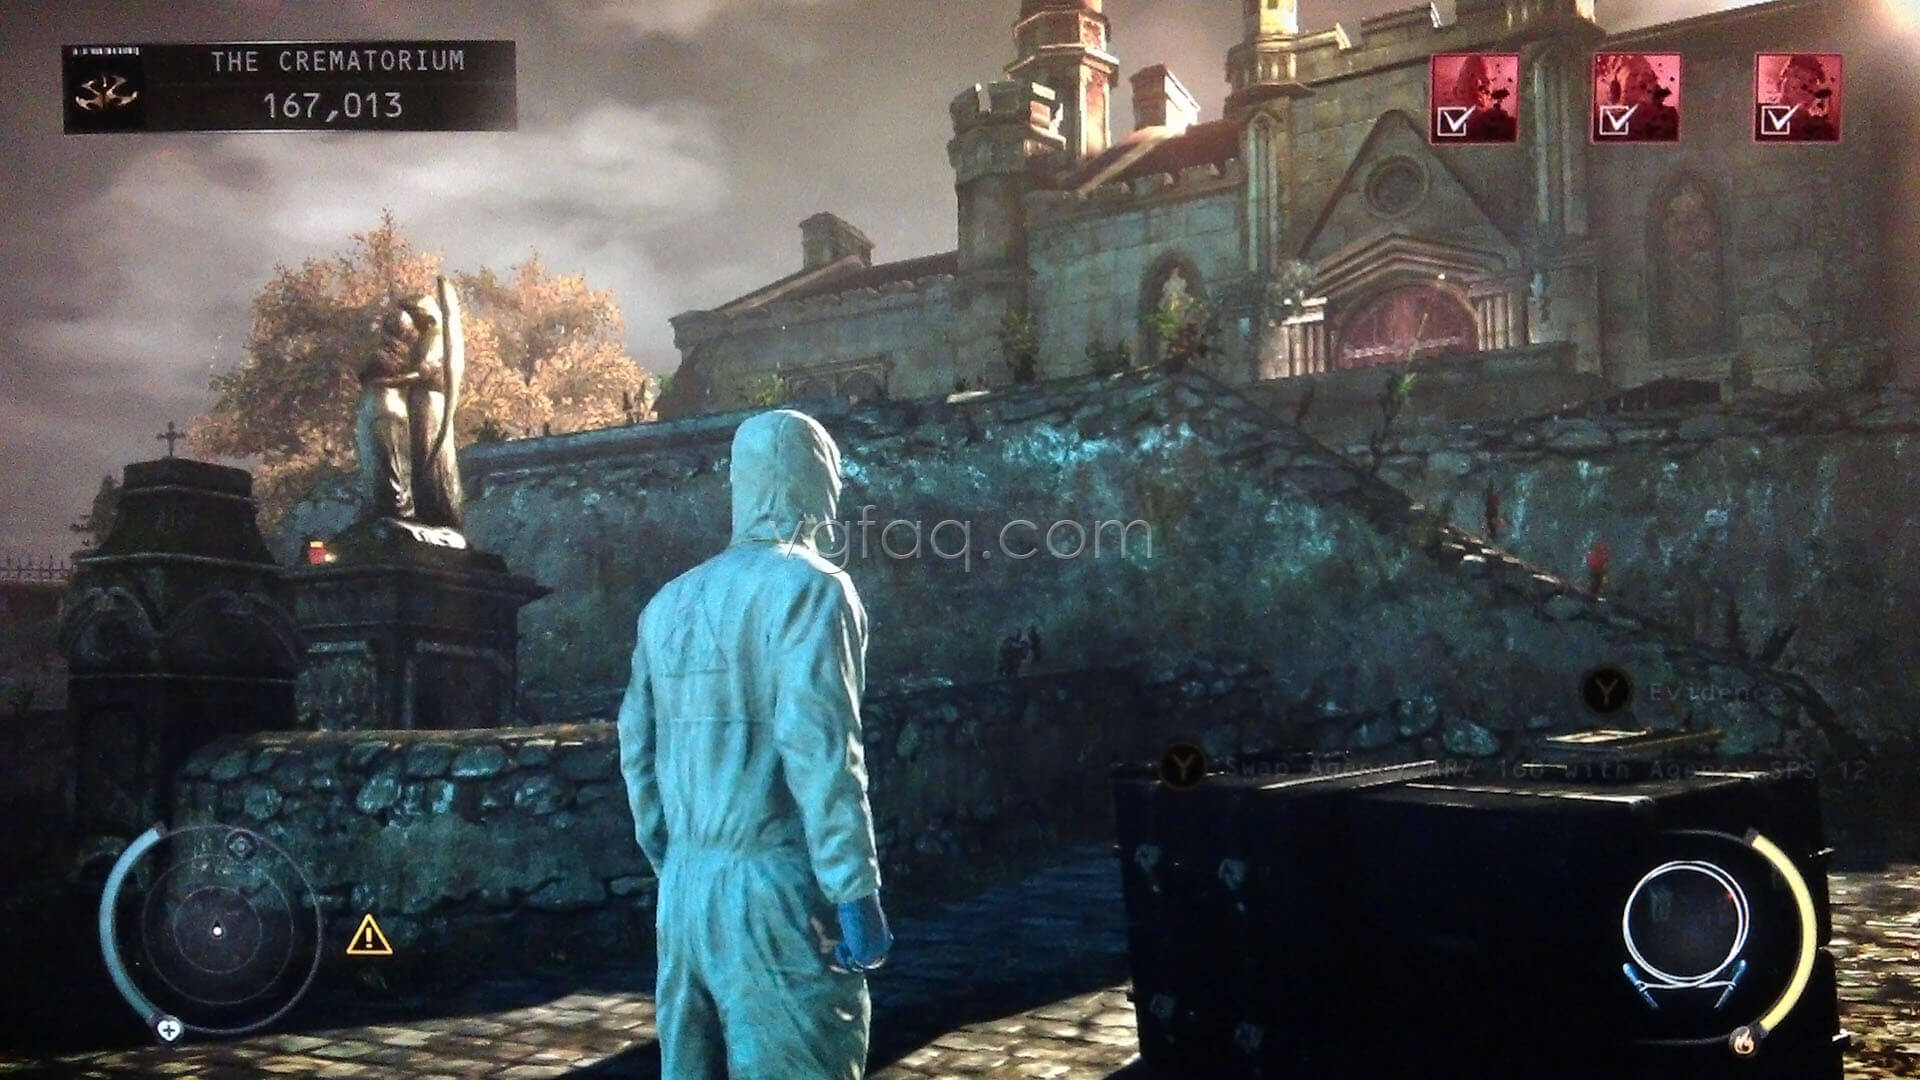 Hitman Absolution My Gameplay 7 Final Mission - TubeBG